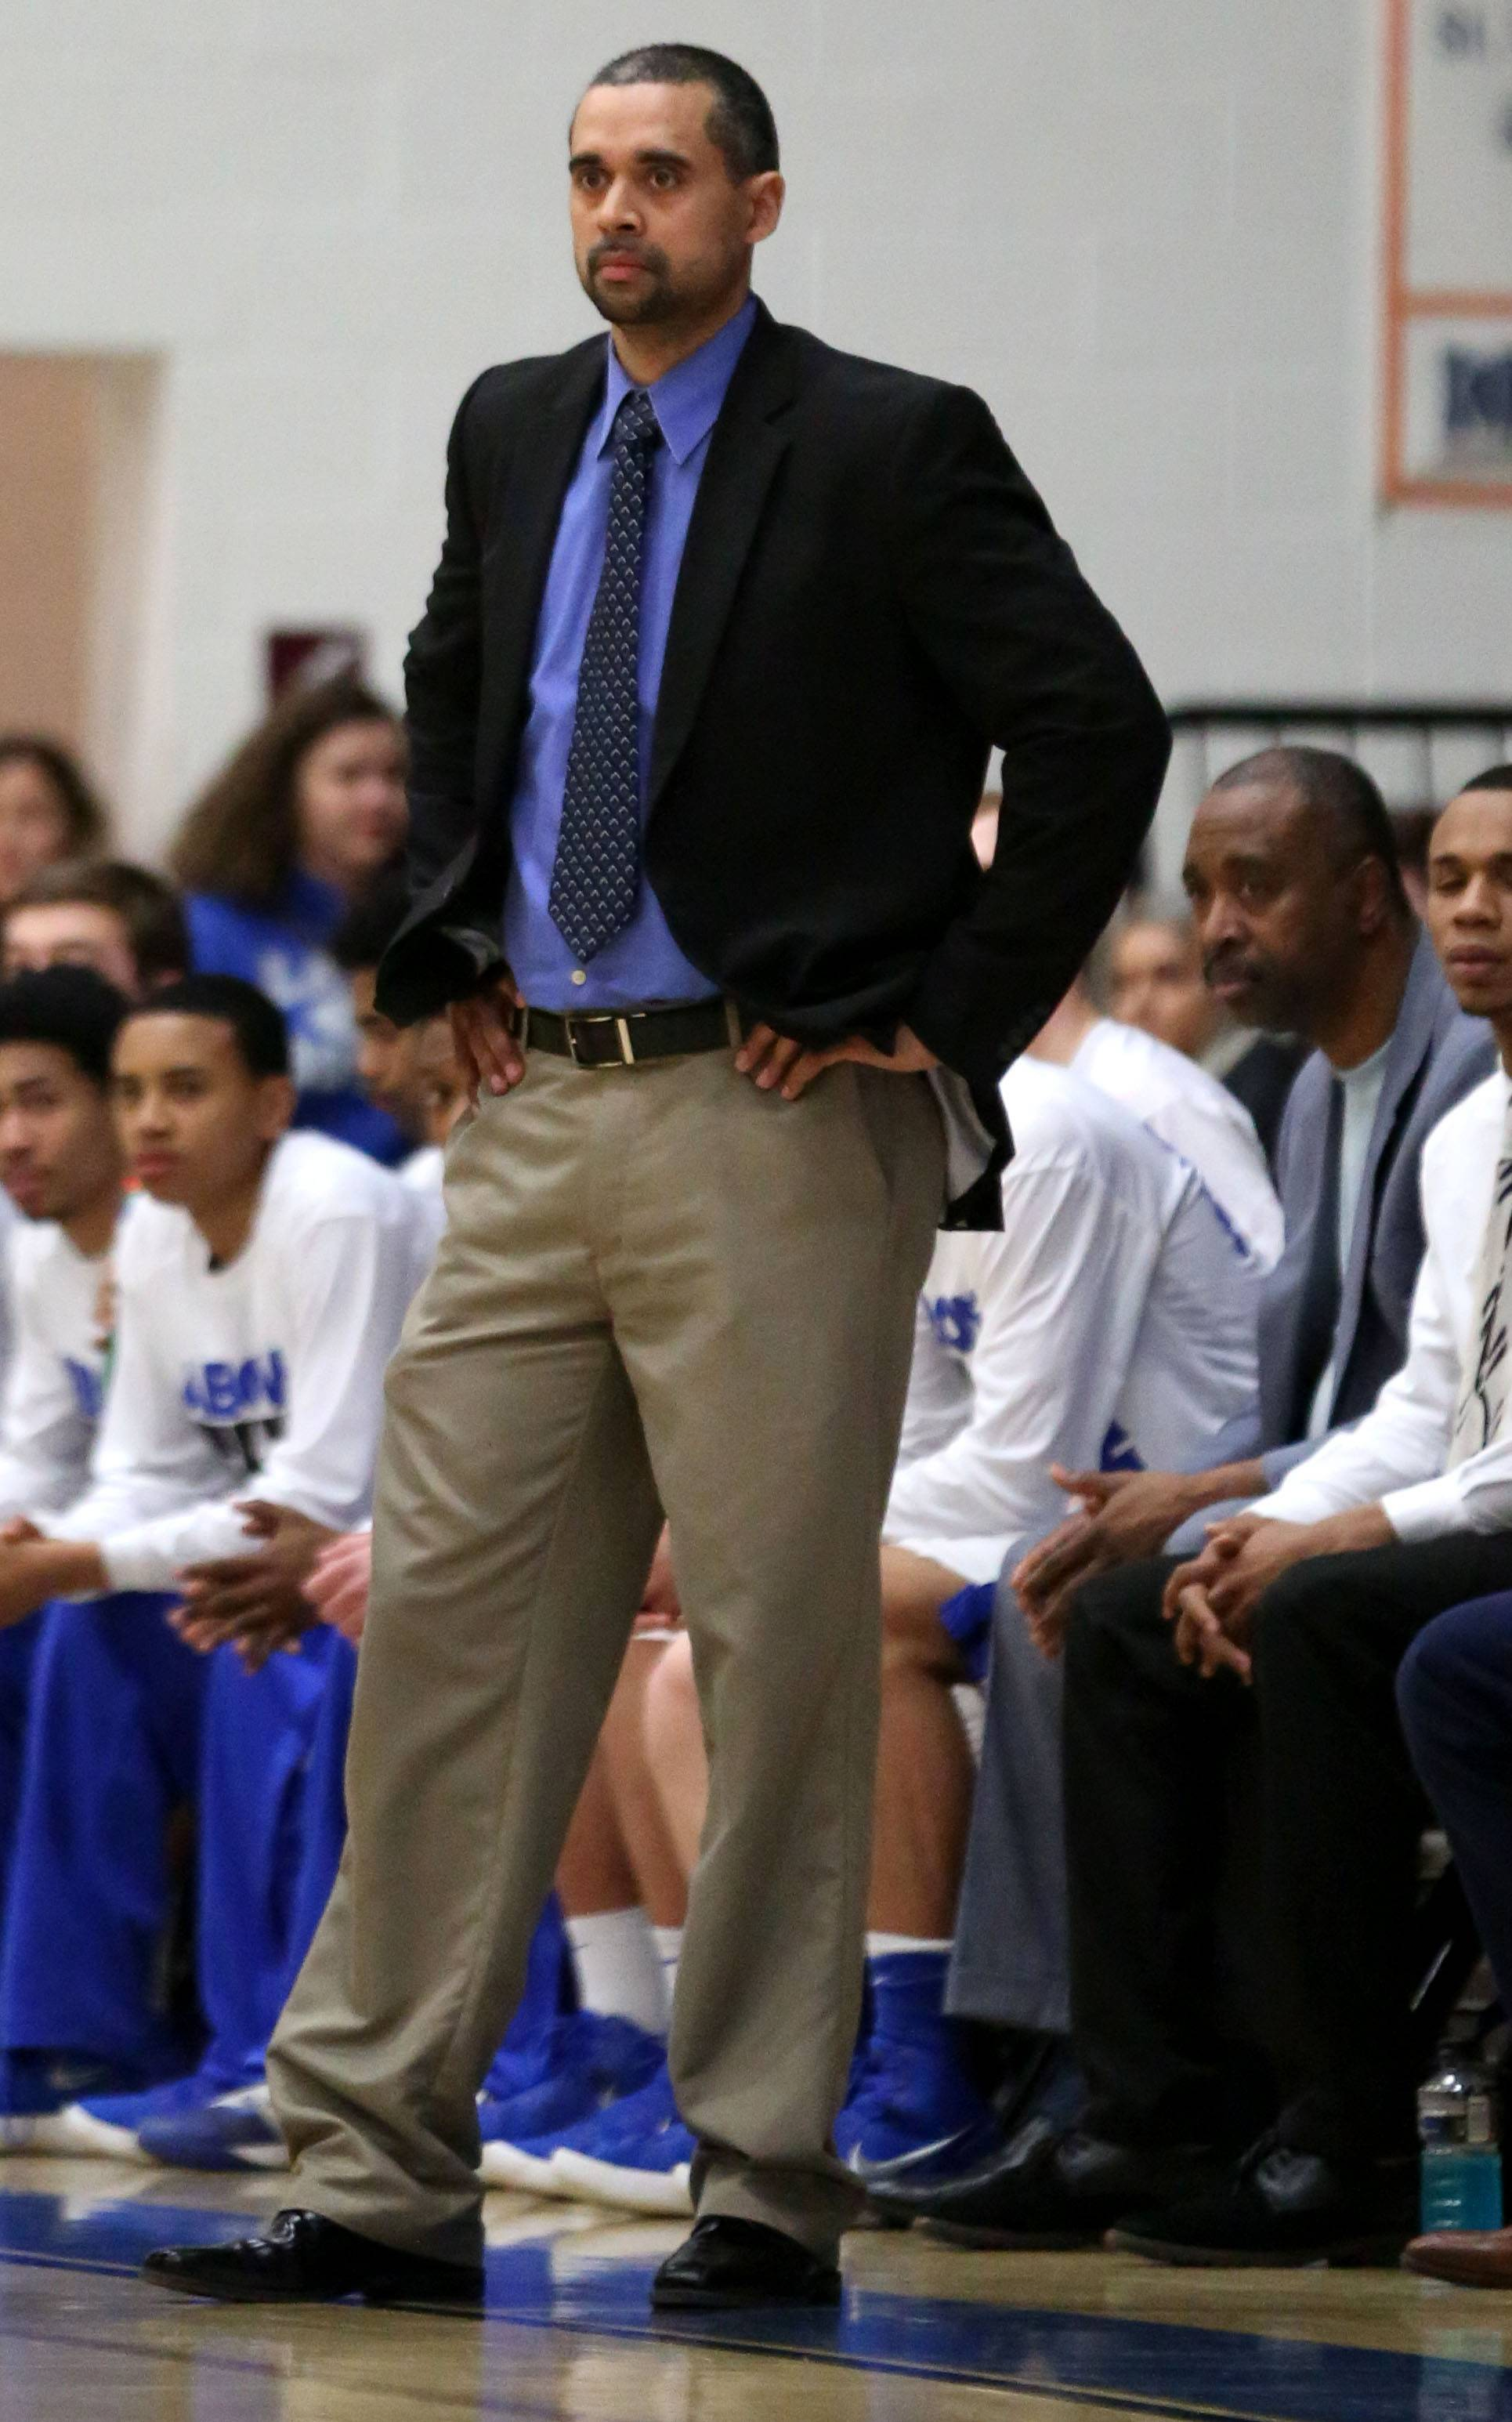 Larkin boys basketball coach Deryn Carter has the Royals back in sectional play, where they will meet Rockford Auburn Tuesday at 7 p.m. in the Class 4A Jacobs semifinals.